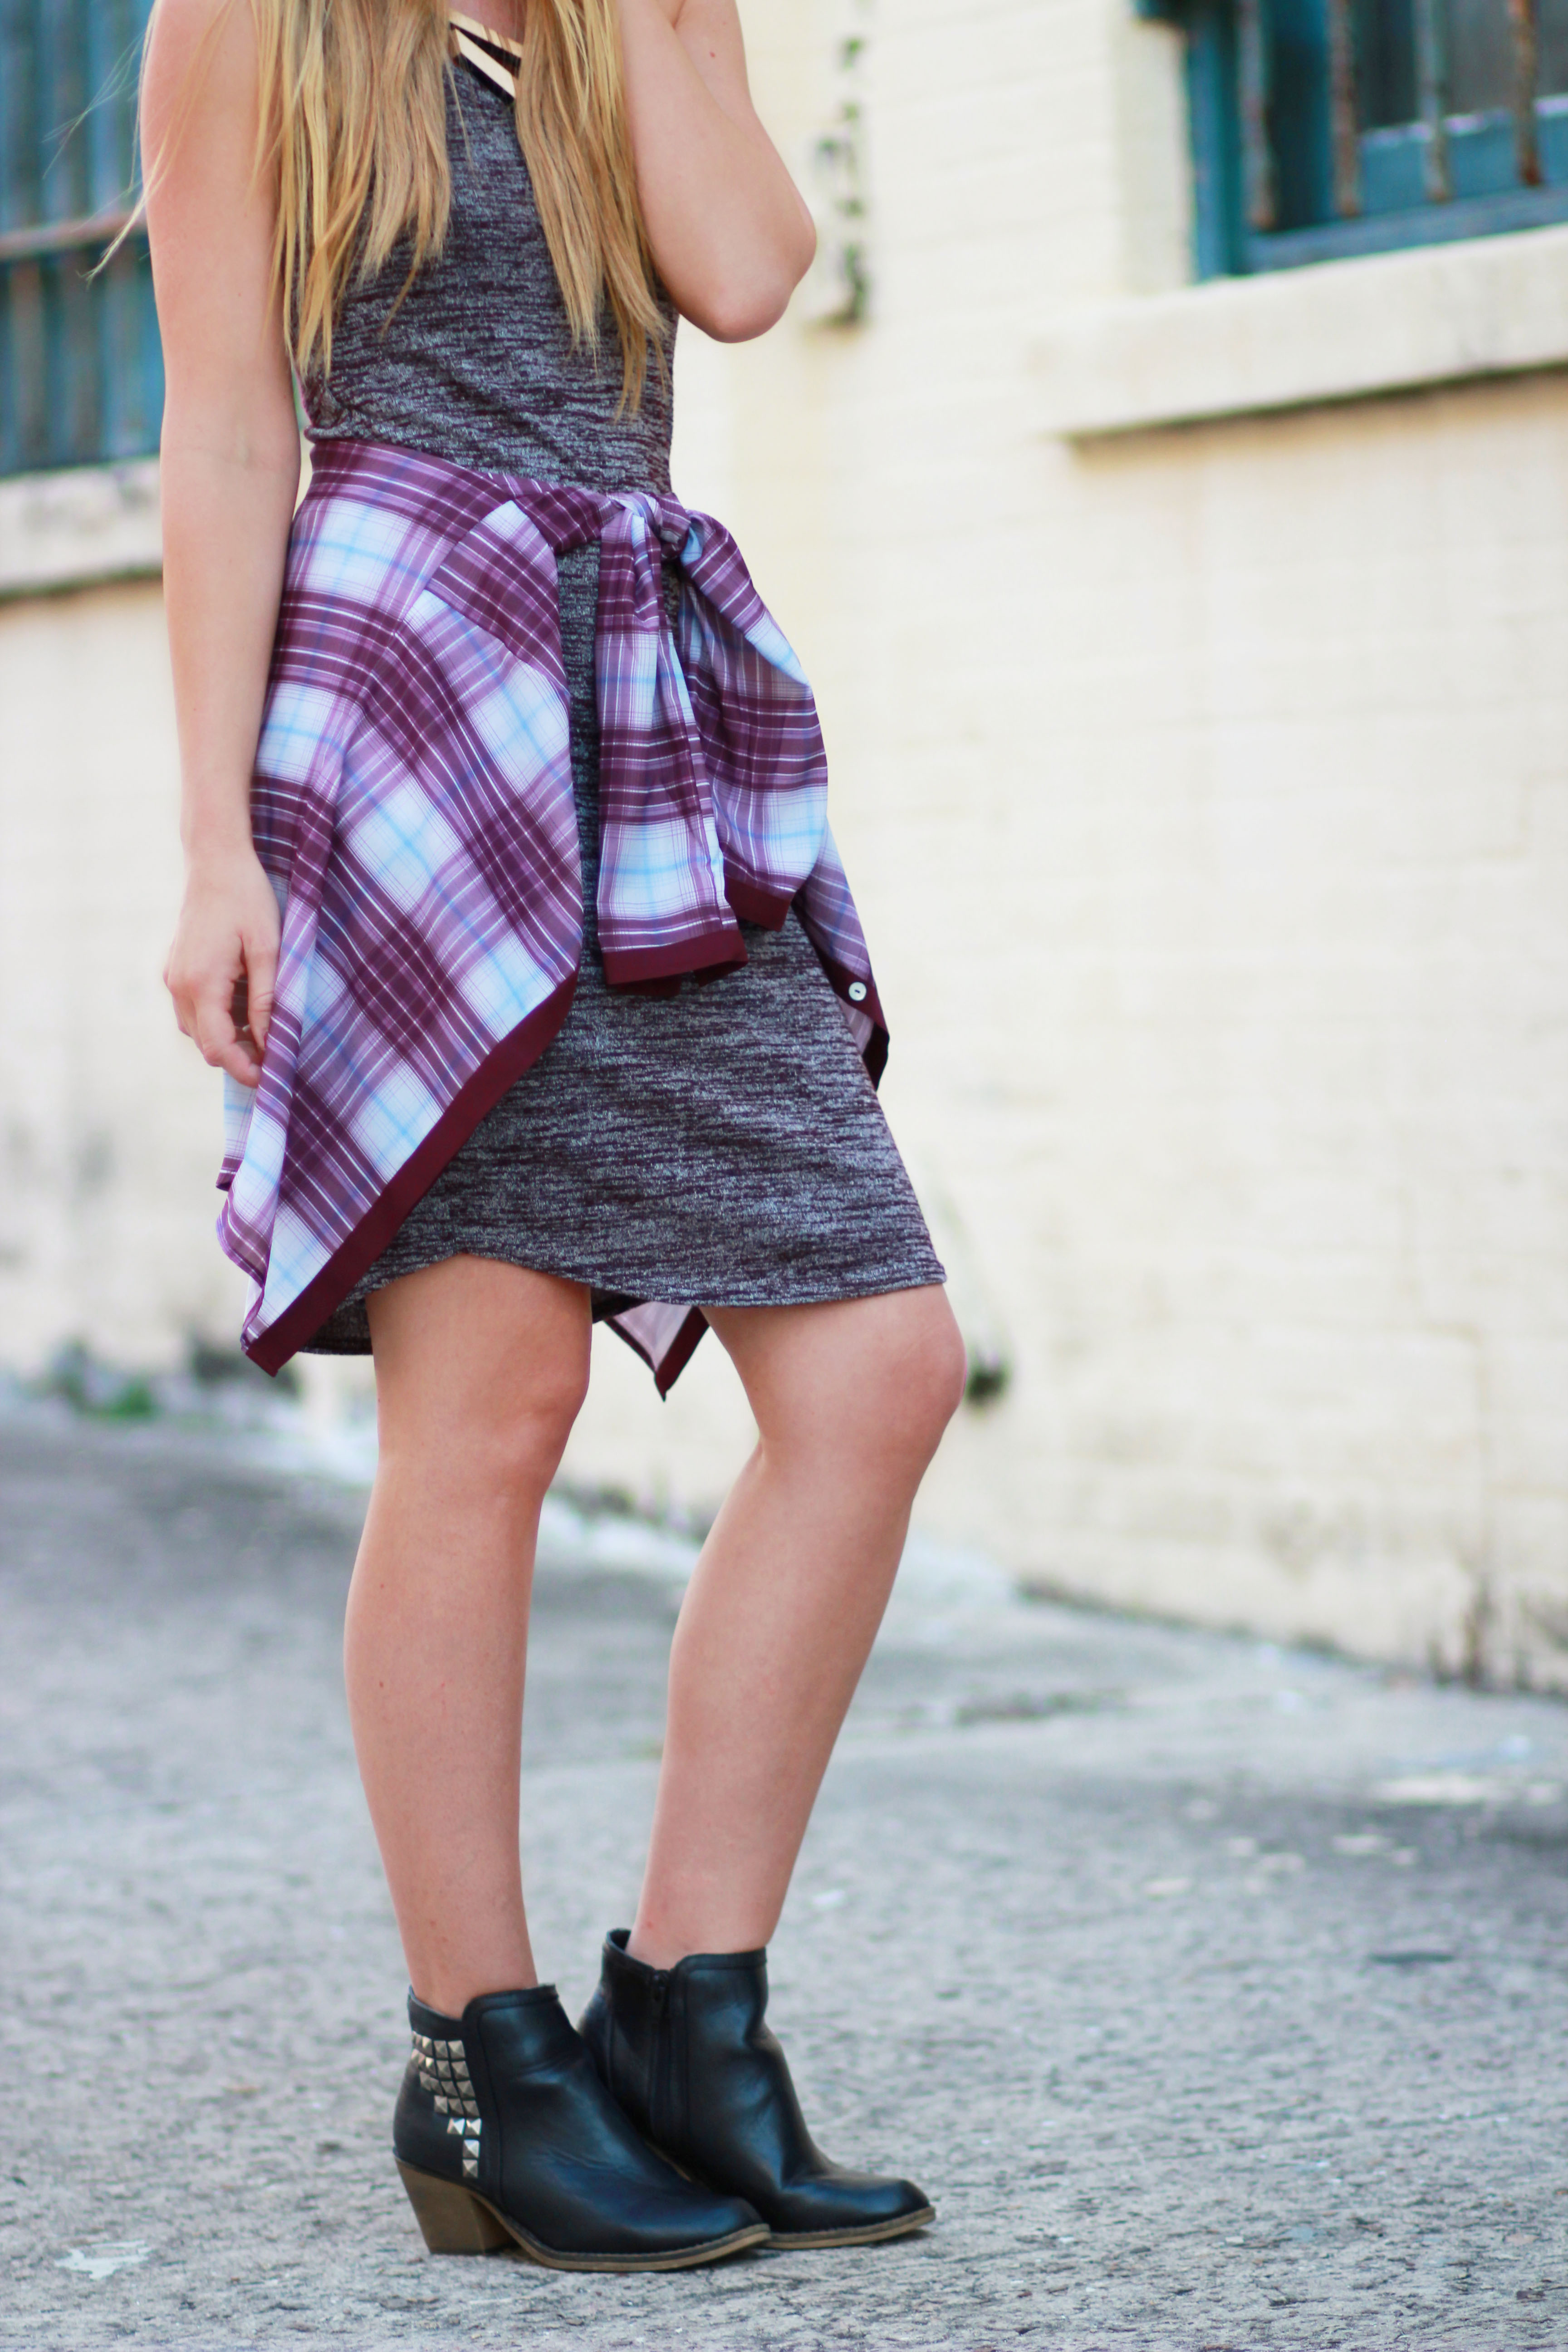 florida fashion blogger styles forever 21 midi dress with h&m plaid shirt, target booties, and target hat for a grunge fall outfit